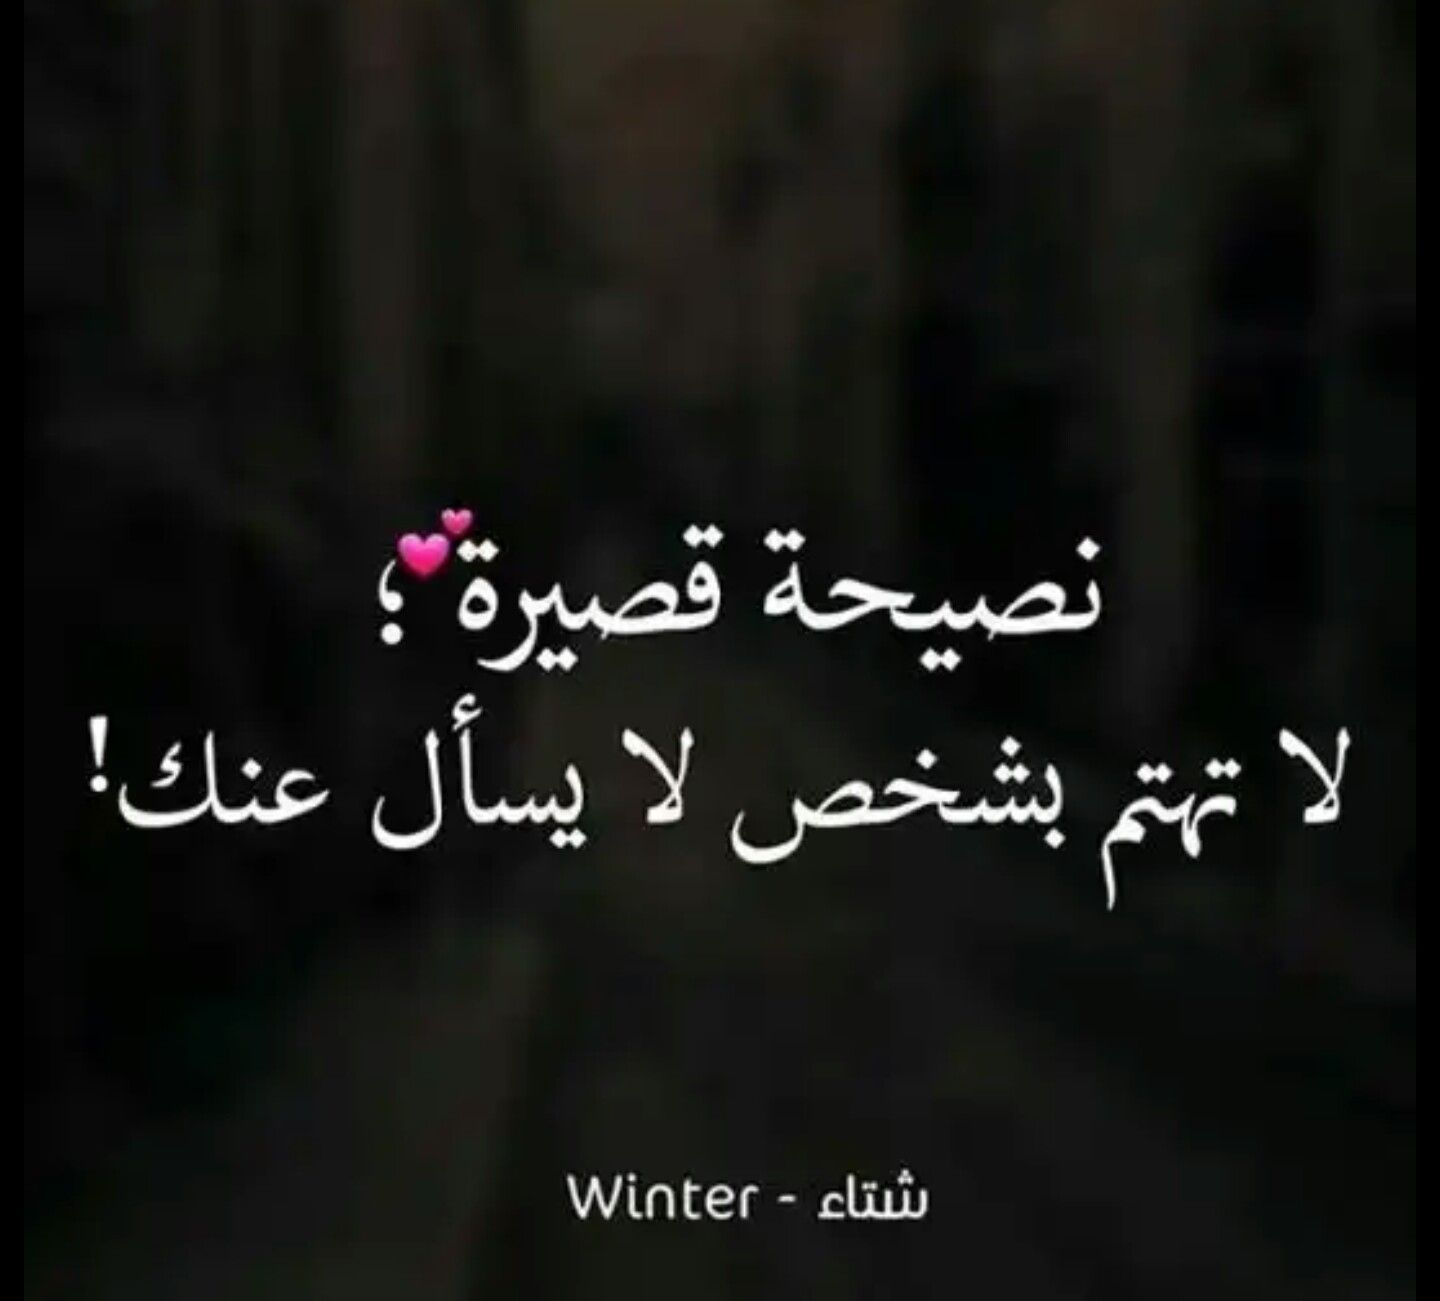 Pin By ستحلم بشي وترى واقع غير ذالك On M Vip 18 Sayings Calligraphy Quotes